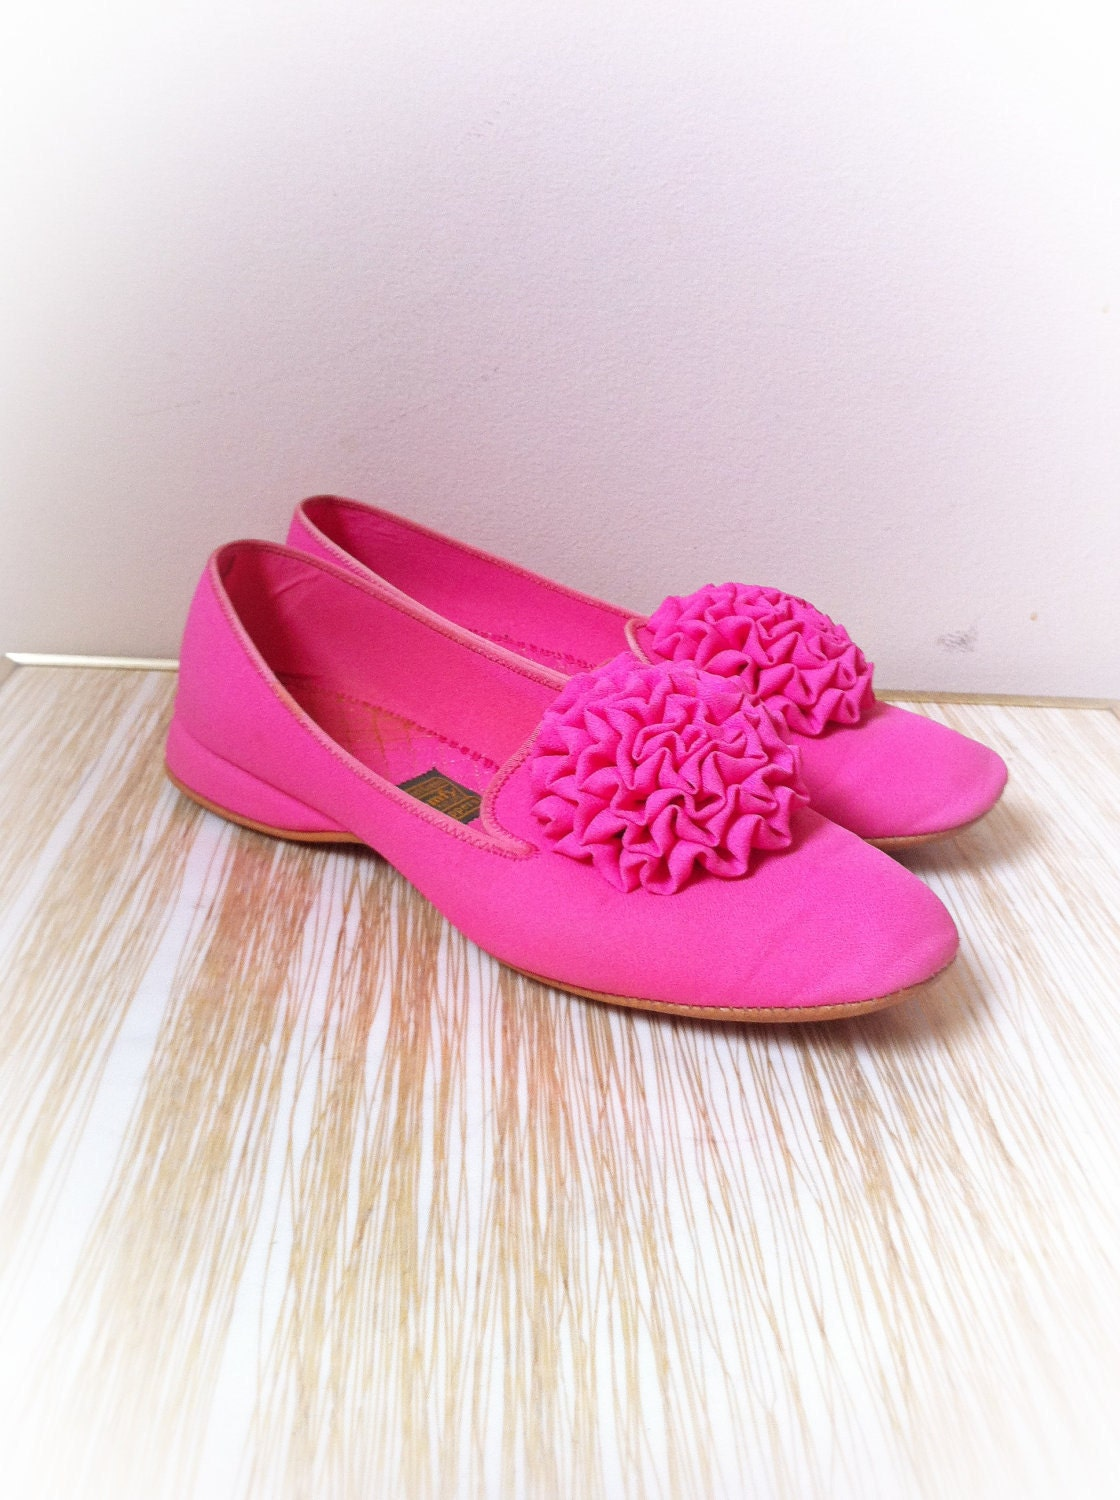 vintage daniel green slippers pink house shoes by